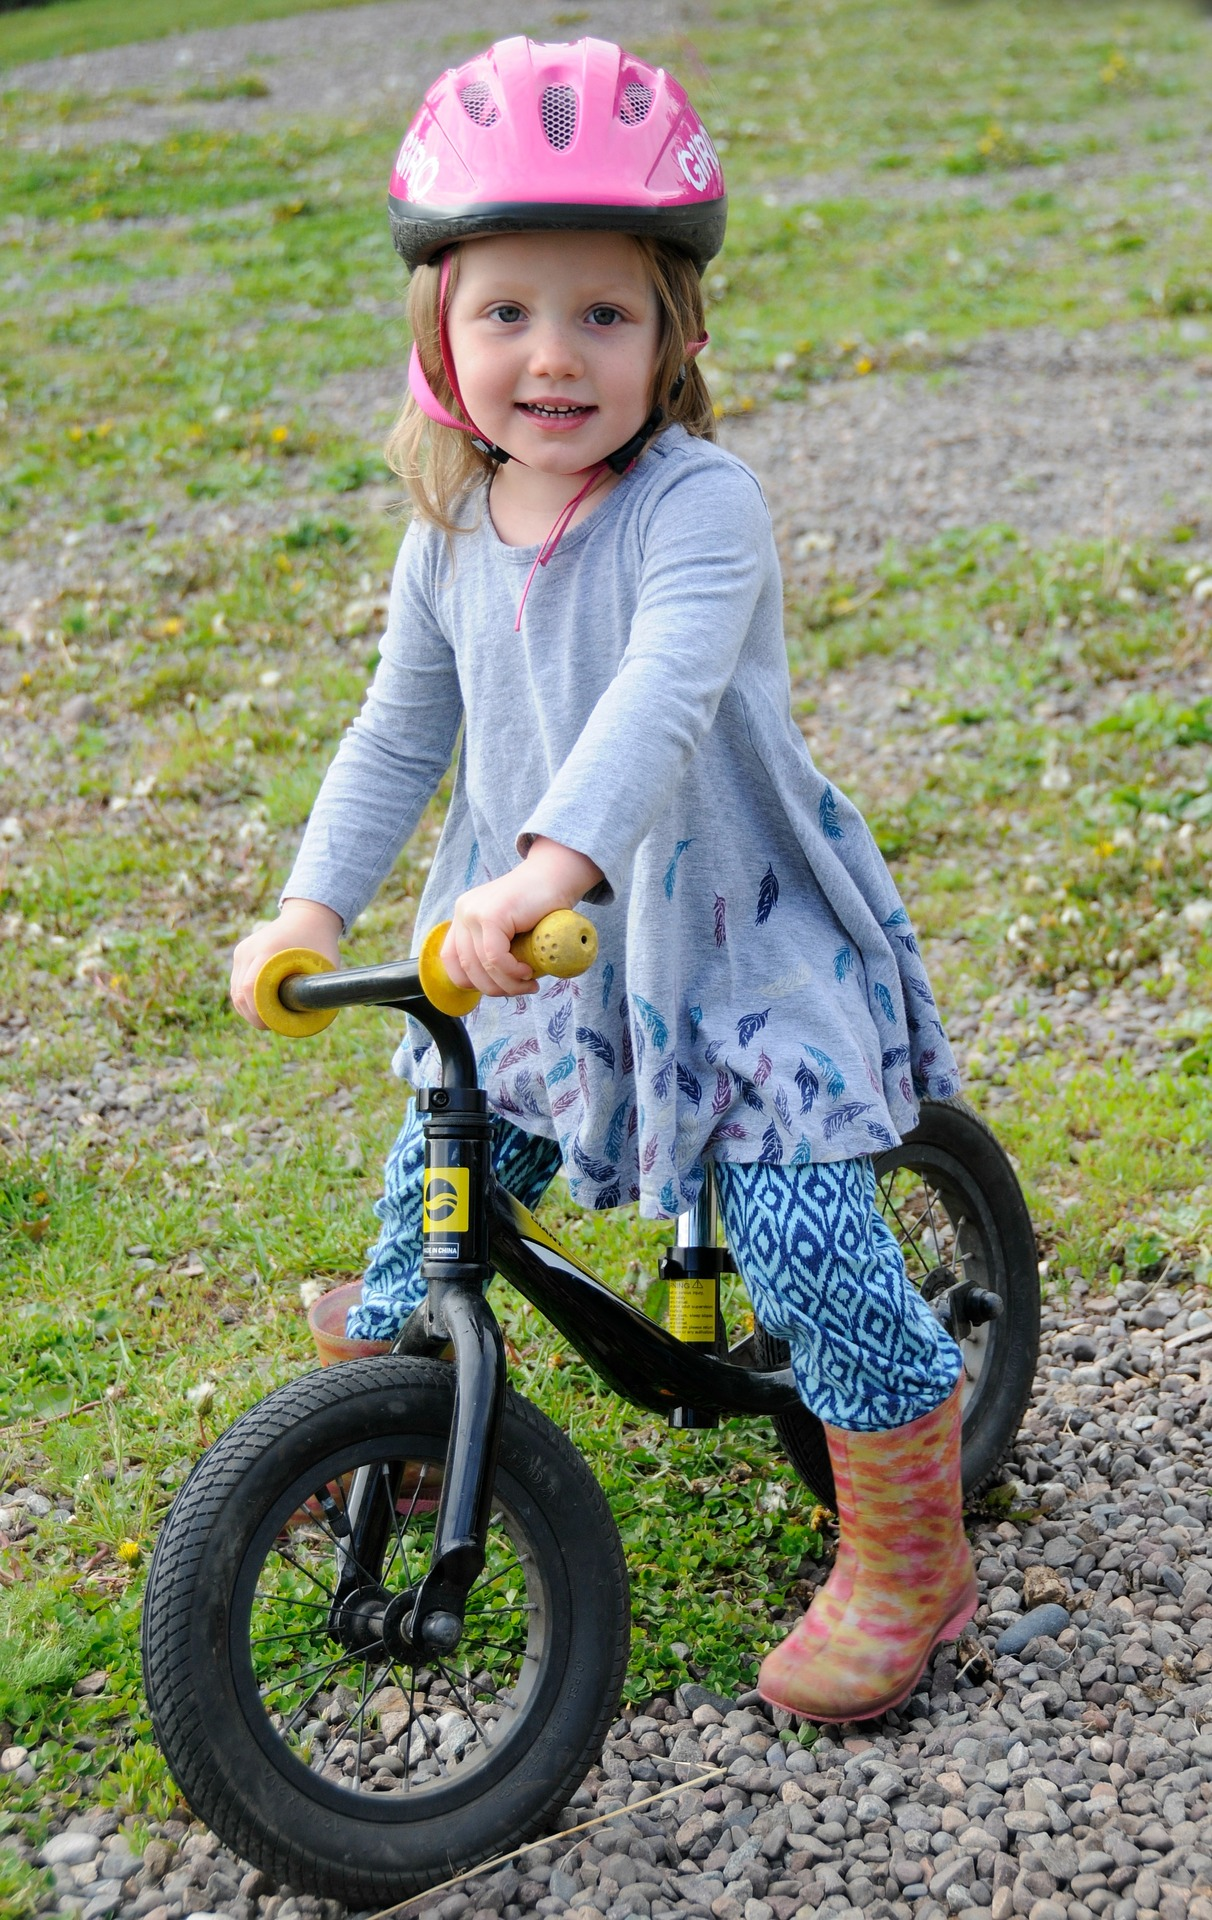 A girl poses with her balance bike.